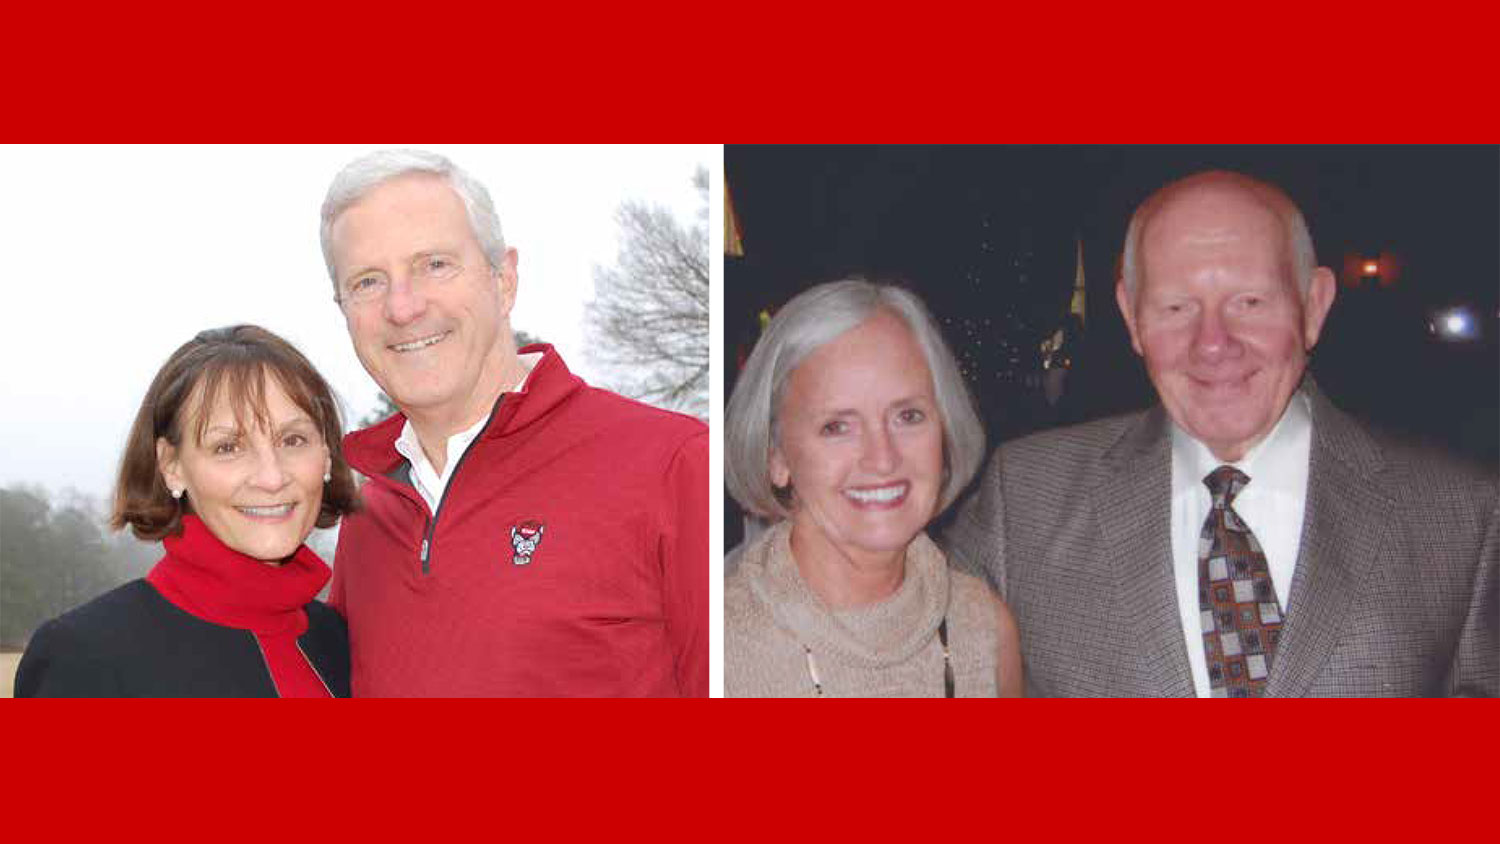 From left, Scott Stabler, MAE'82, with wife Beth, and Gerald White, MSE '60, with wife Nancy